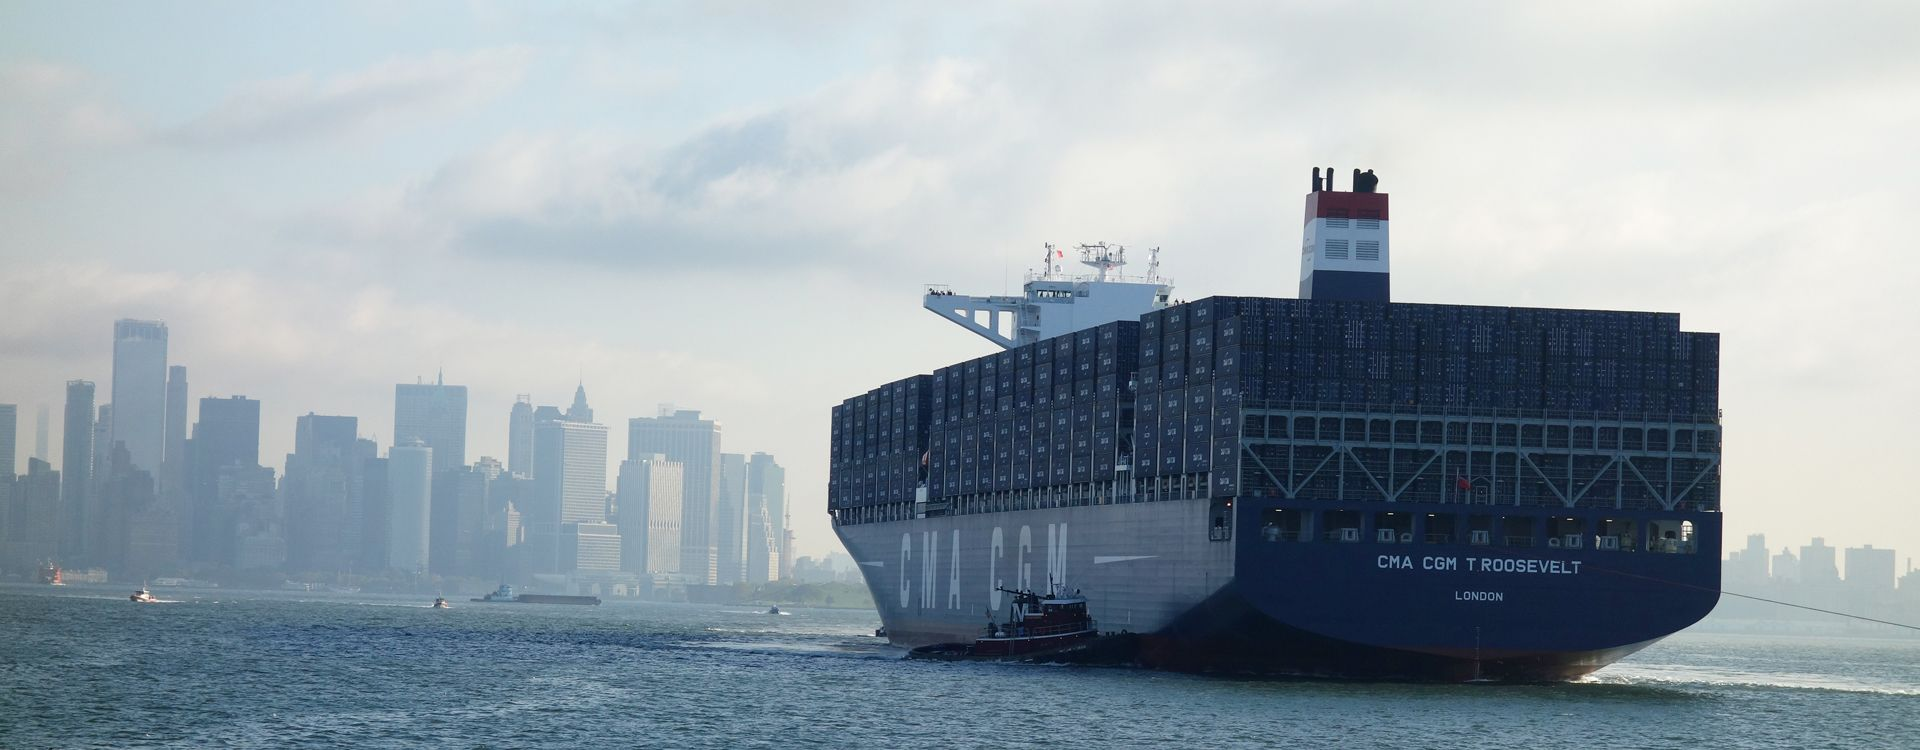 bnr-nyc-harbor-panamax-ship-underwater-infrastructure